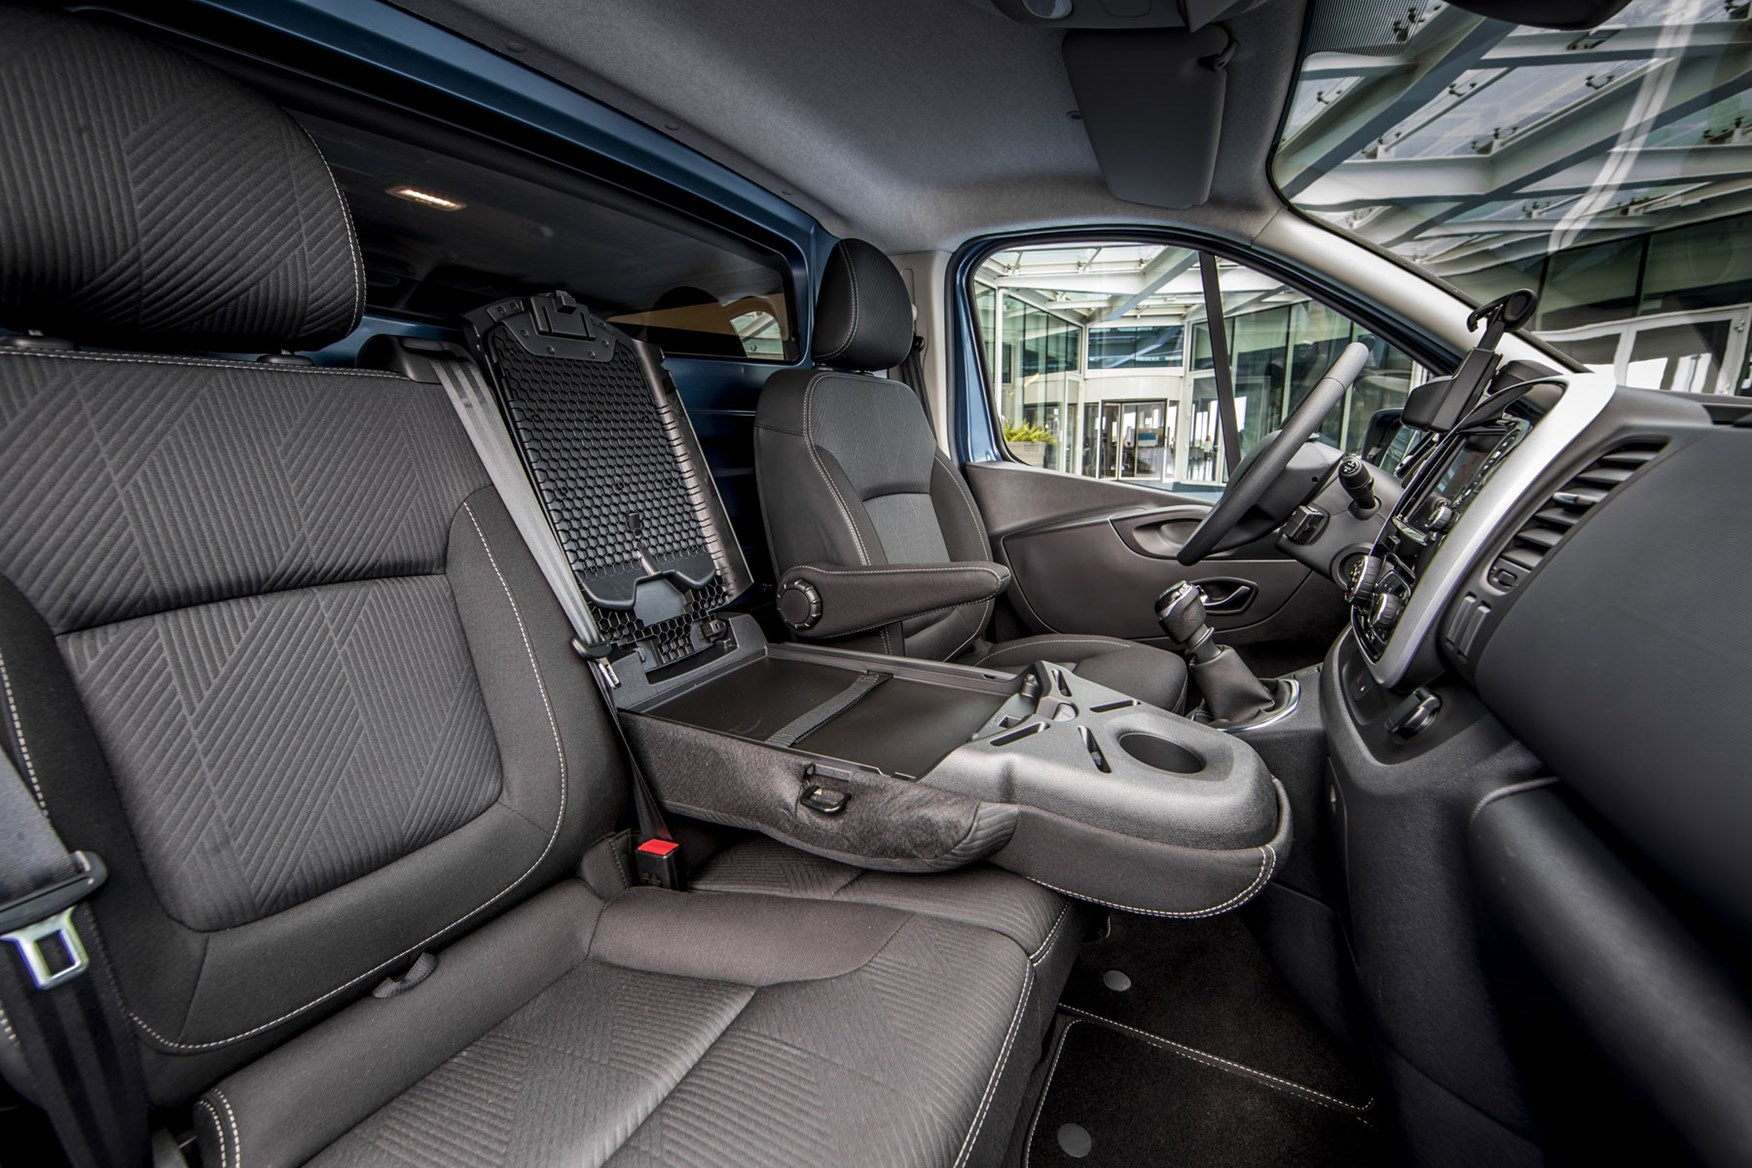 Renault Trafic review - 2019 facelift, cab interior showing seats and fold-down middle seat mobile office desk